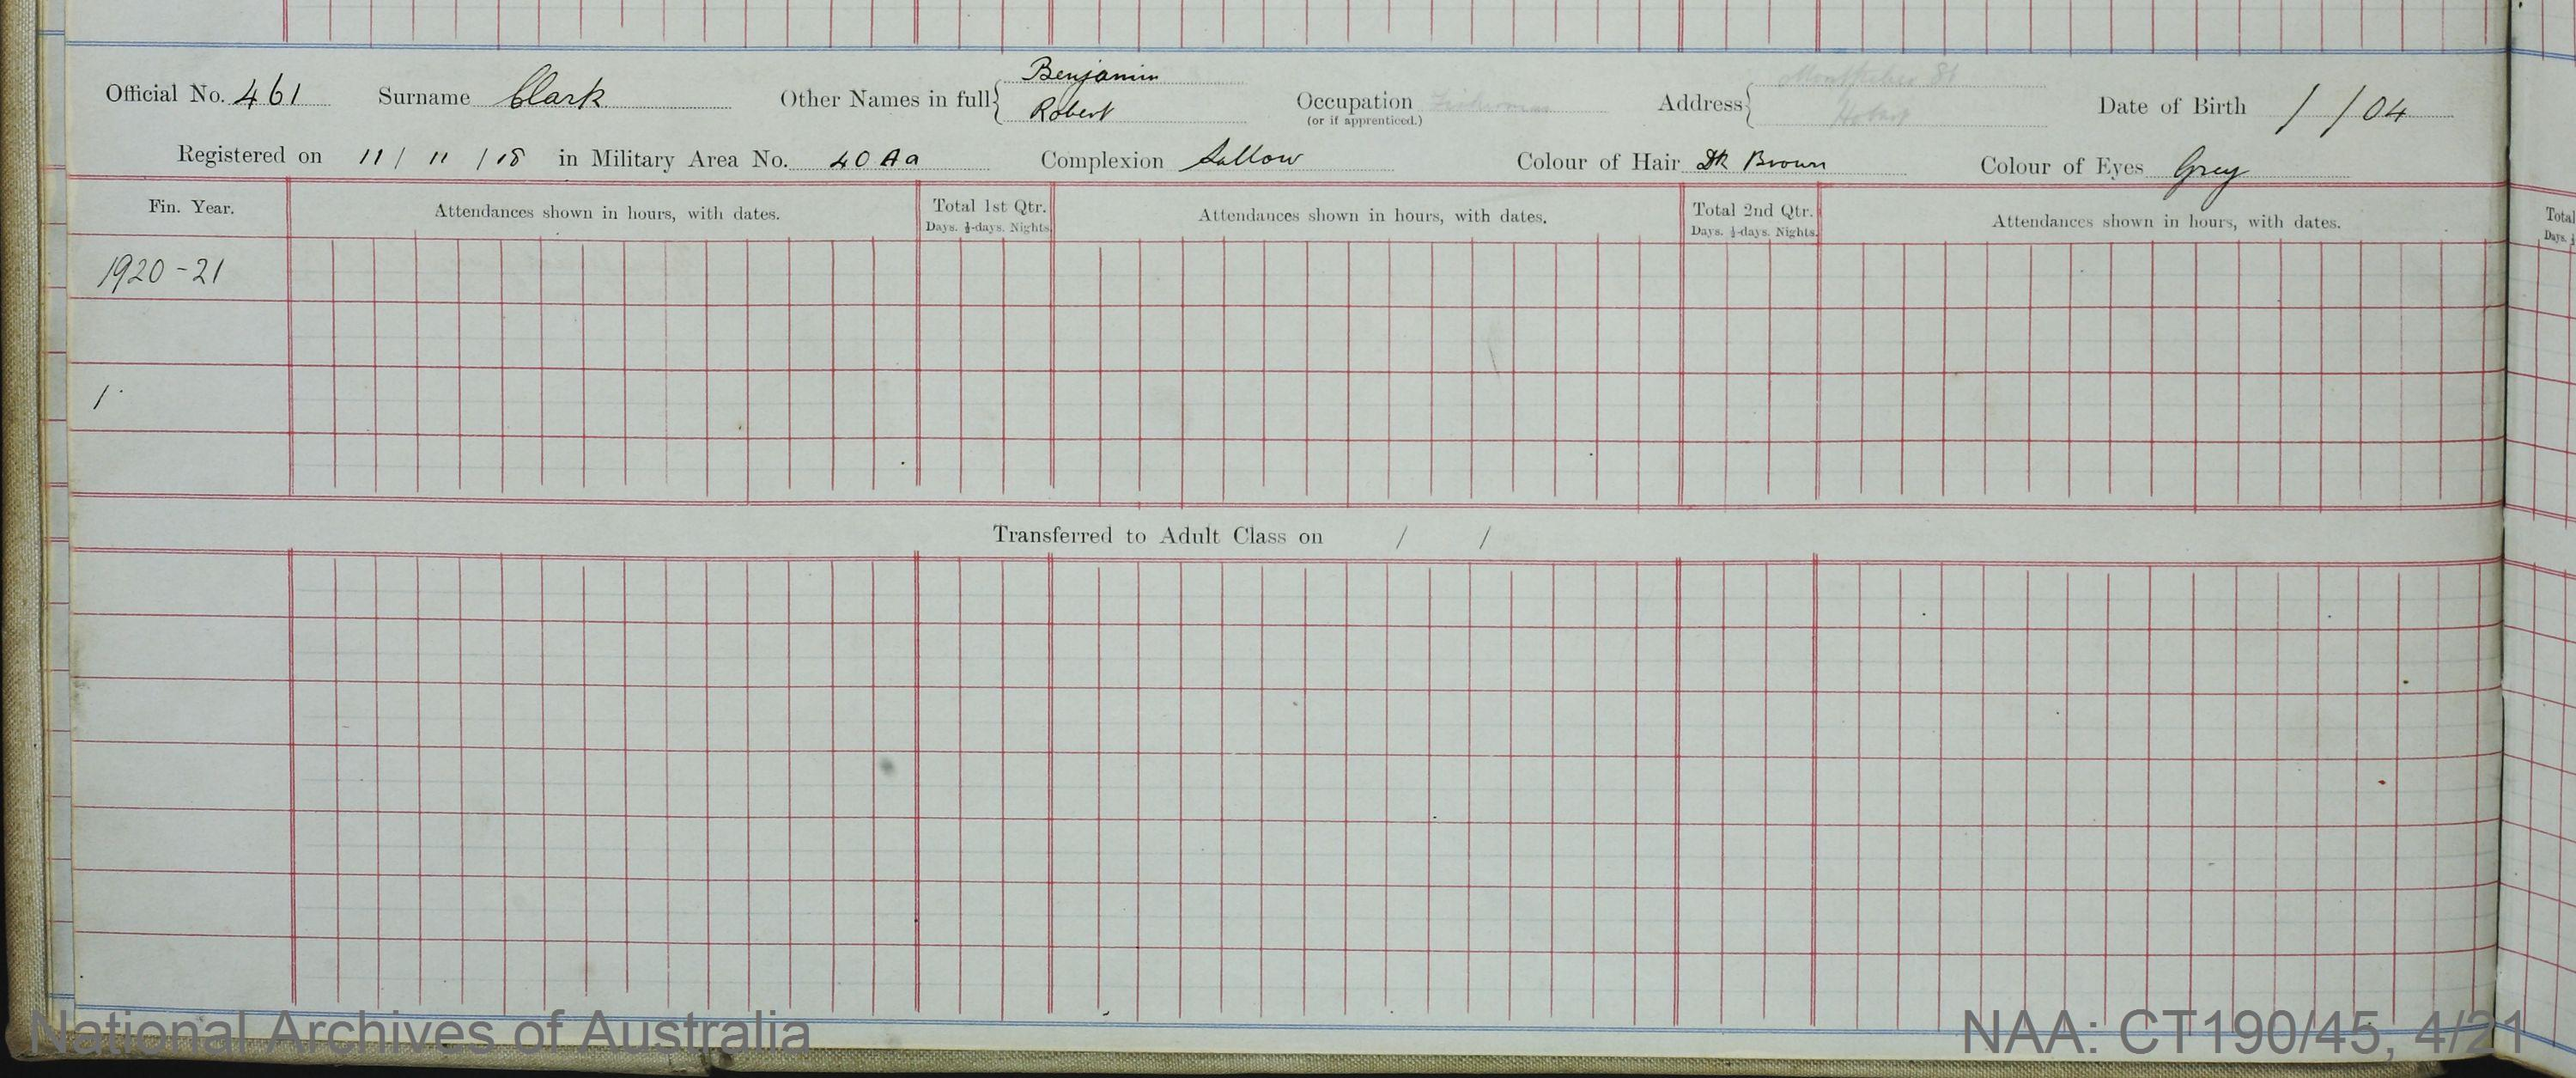 SURNAME - CLARK;  GIVEN NAME(S) - Benjamin Robert;  OFFICIAL NUMBER - 461;  DATE OF BIRTH - 1904;  PLACE OF BIRTH - [Unknown];  NEXT OF KIN - [Unknown];  SERVICE/STATION -Tasmania;  REGISTRATION DATE - 11 November 1918